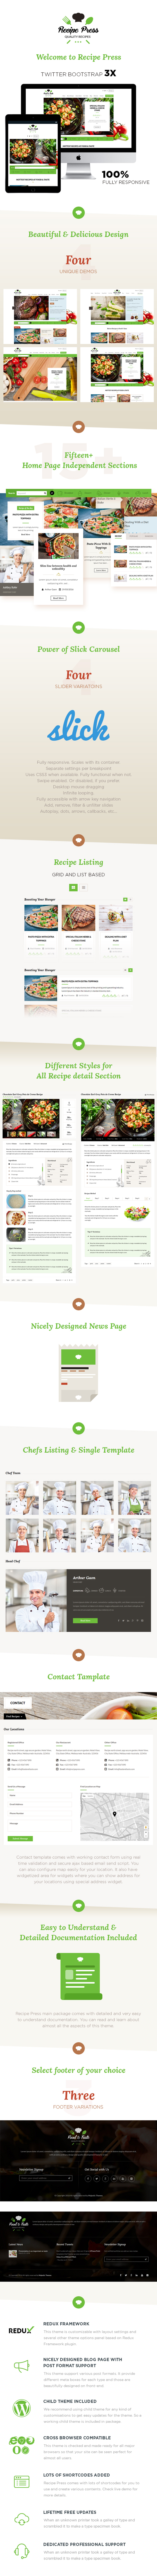 Recipepress food recipes premium wordpress theme download theme buy recipepress food recipes premium wordpress theme by majesticthemes on themeforest recipepress is a premium wordpress theme for recipes and other forumfinder Choice Image